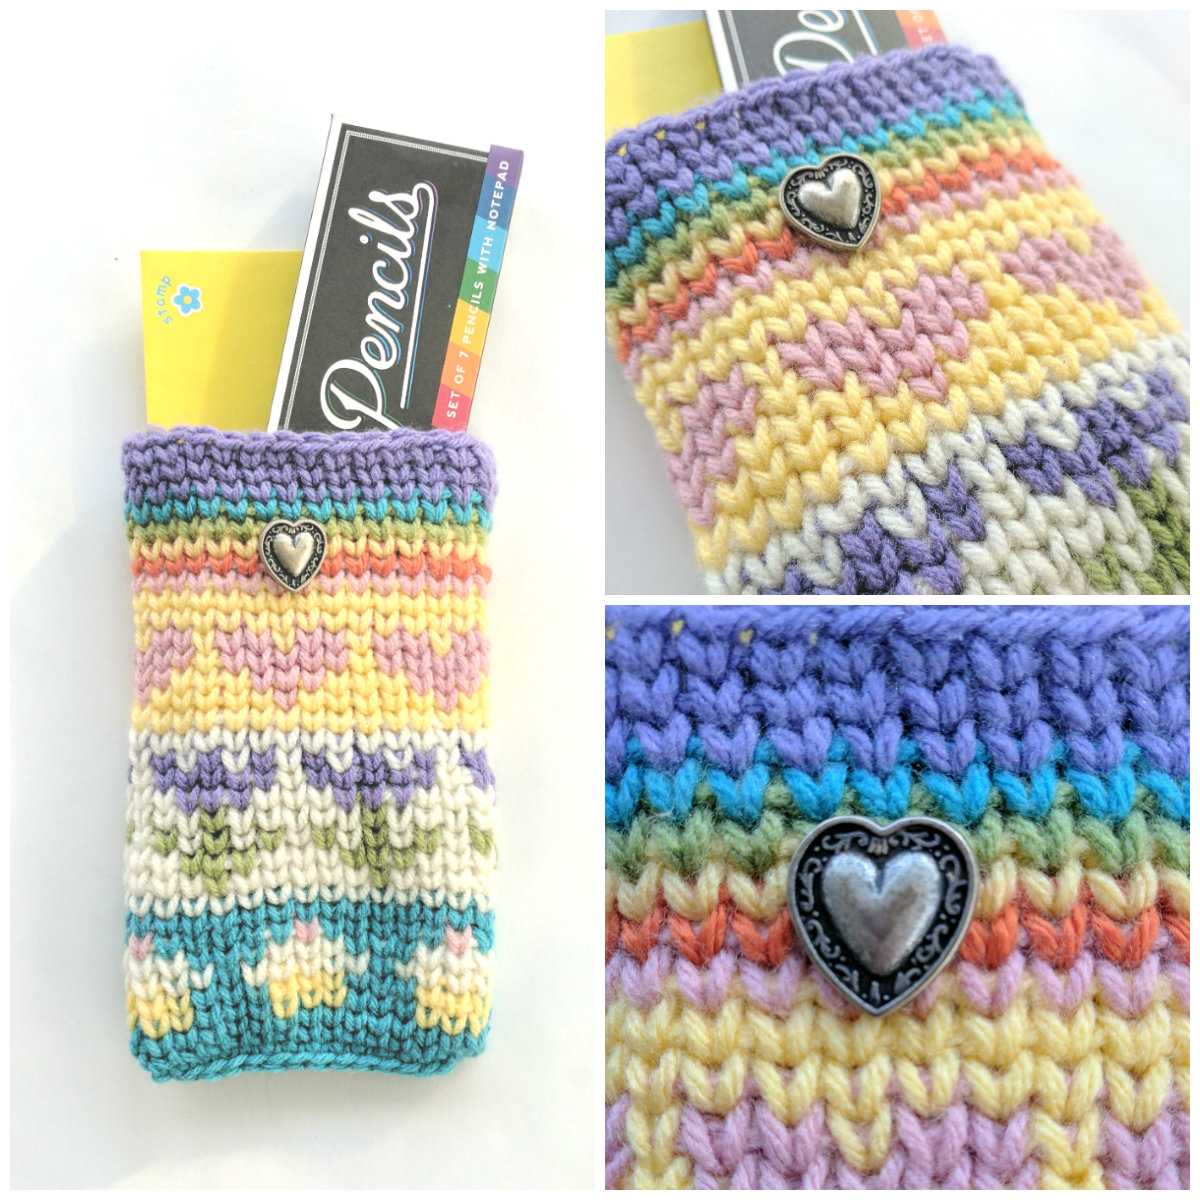 A collage of three images of the same crocheted pouch in pastel colors with hearts, flowers, cupcakes, and a rainbow on it. Left photo is of pouch with a pencil box and yellow envelope in it. Top right photo is a close-up that shows the front of the pouch. Bottom right is a close-up of the metal filigree heart button.